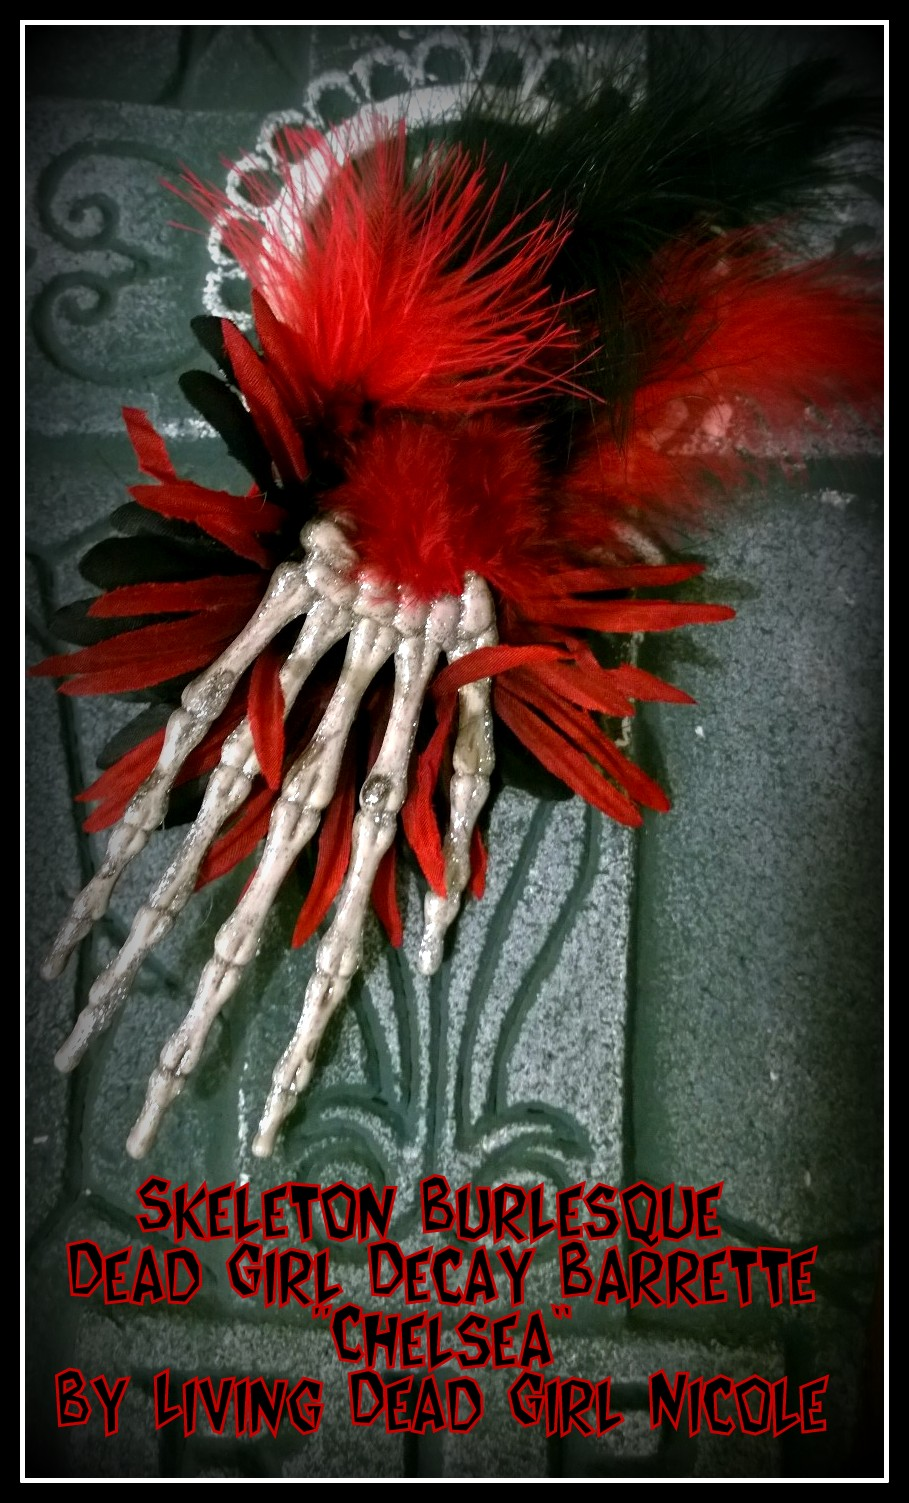 Skeleton Burlesque Barrette